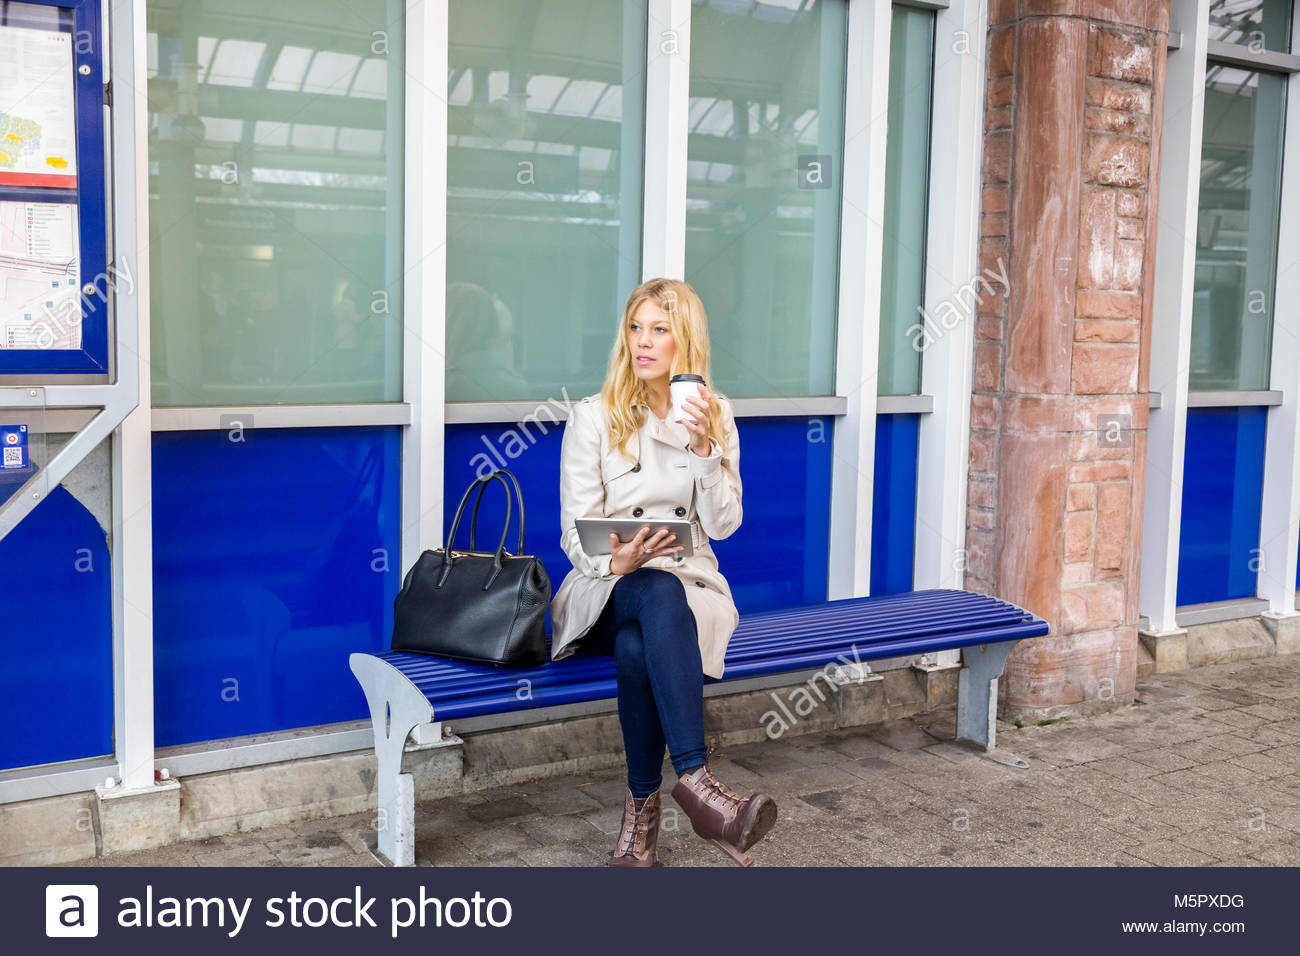 Young woman sitting waiting on a bench - Stock Image